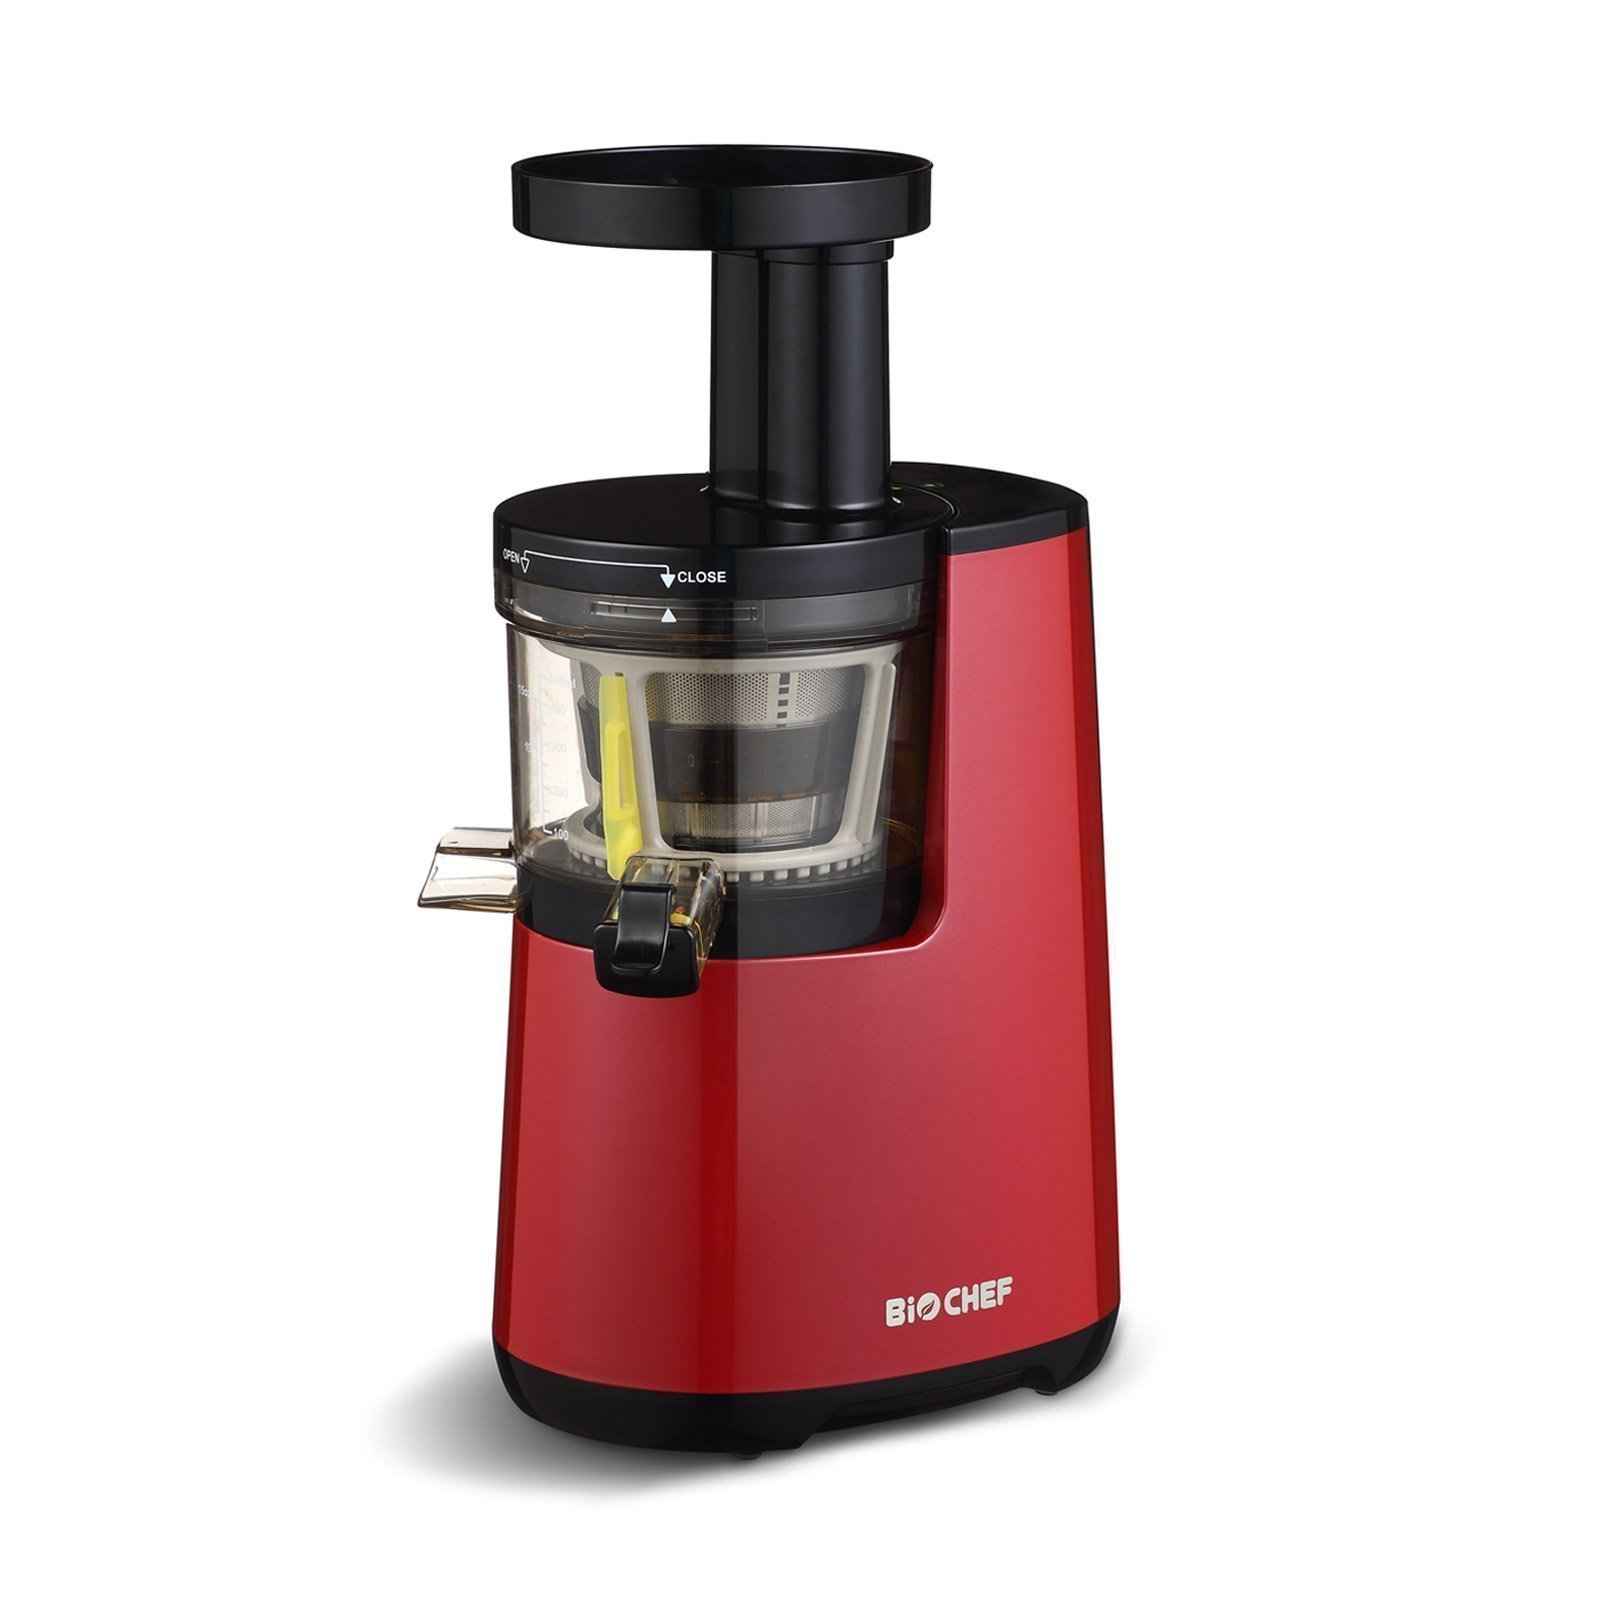 NEW BioChef Atlas Cold Press Slow Fruit Juicer - Red eBay